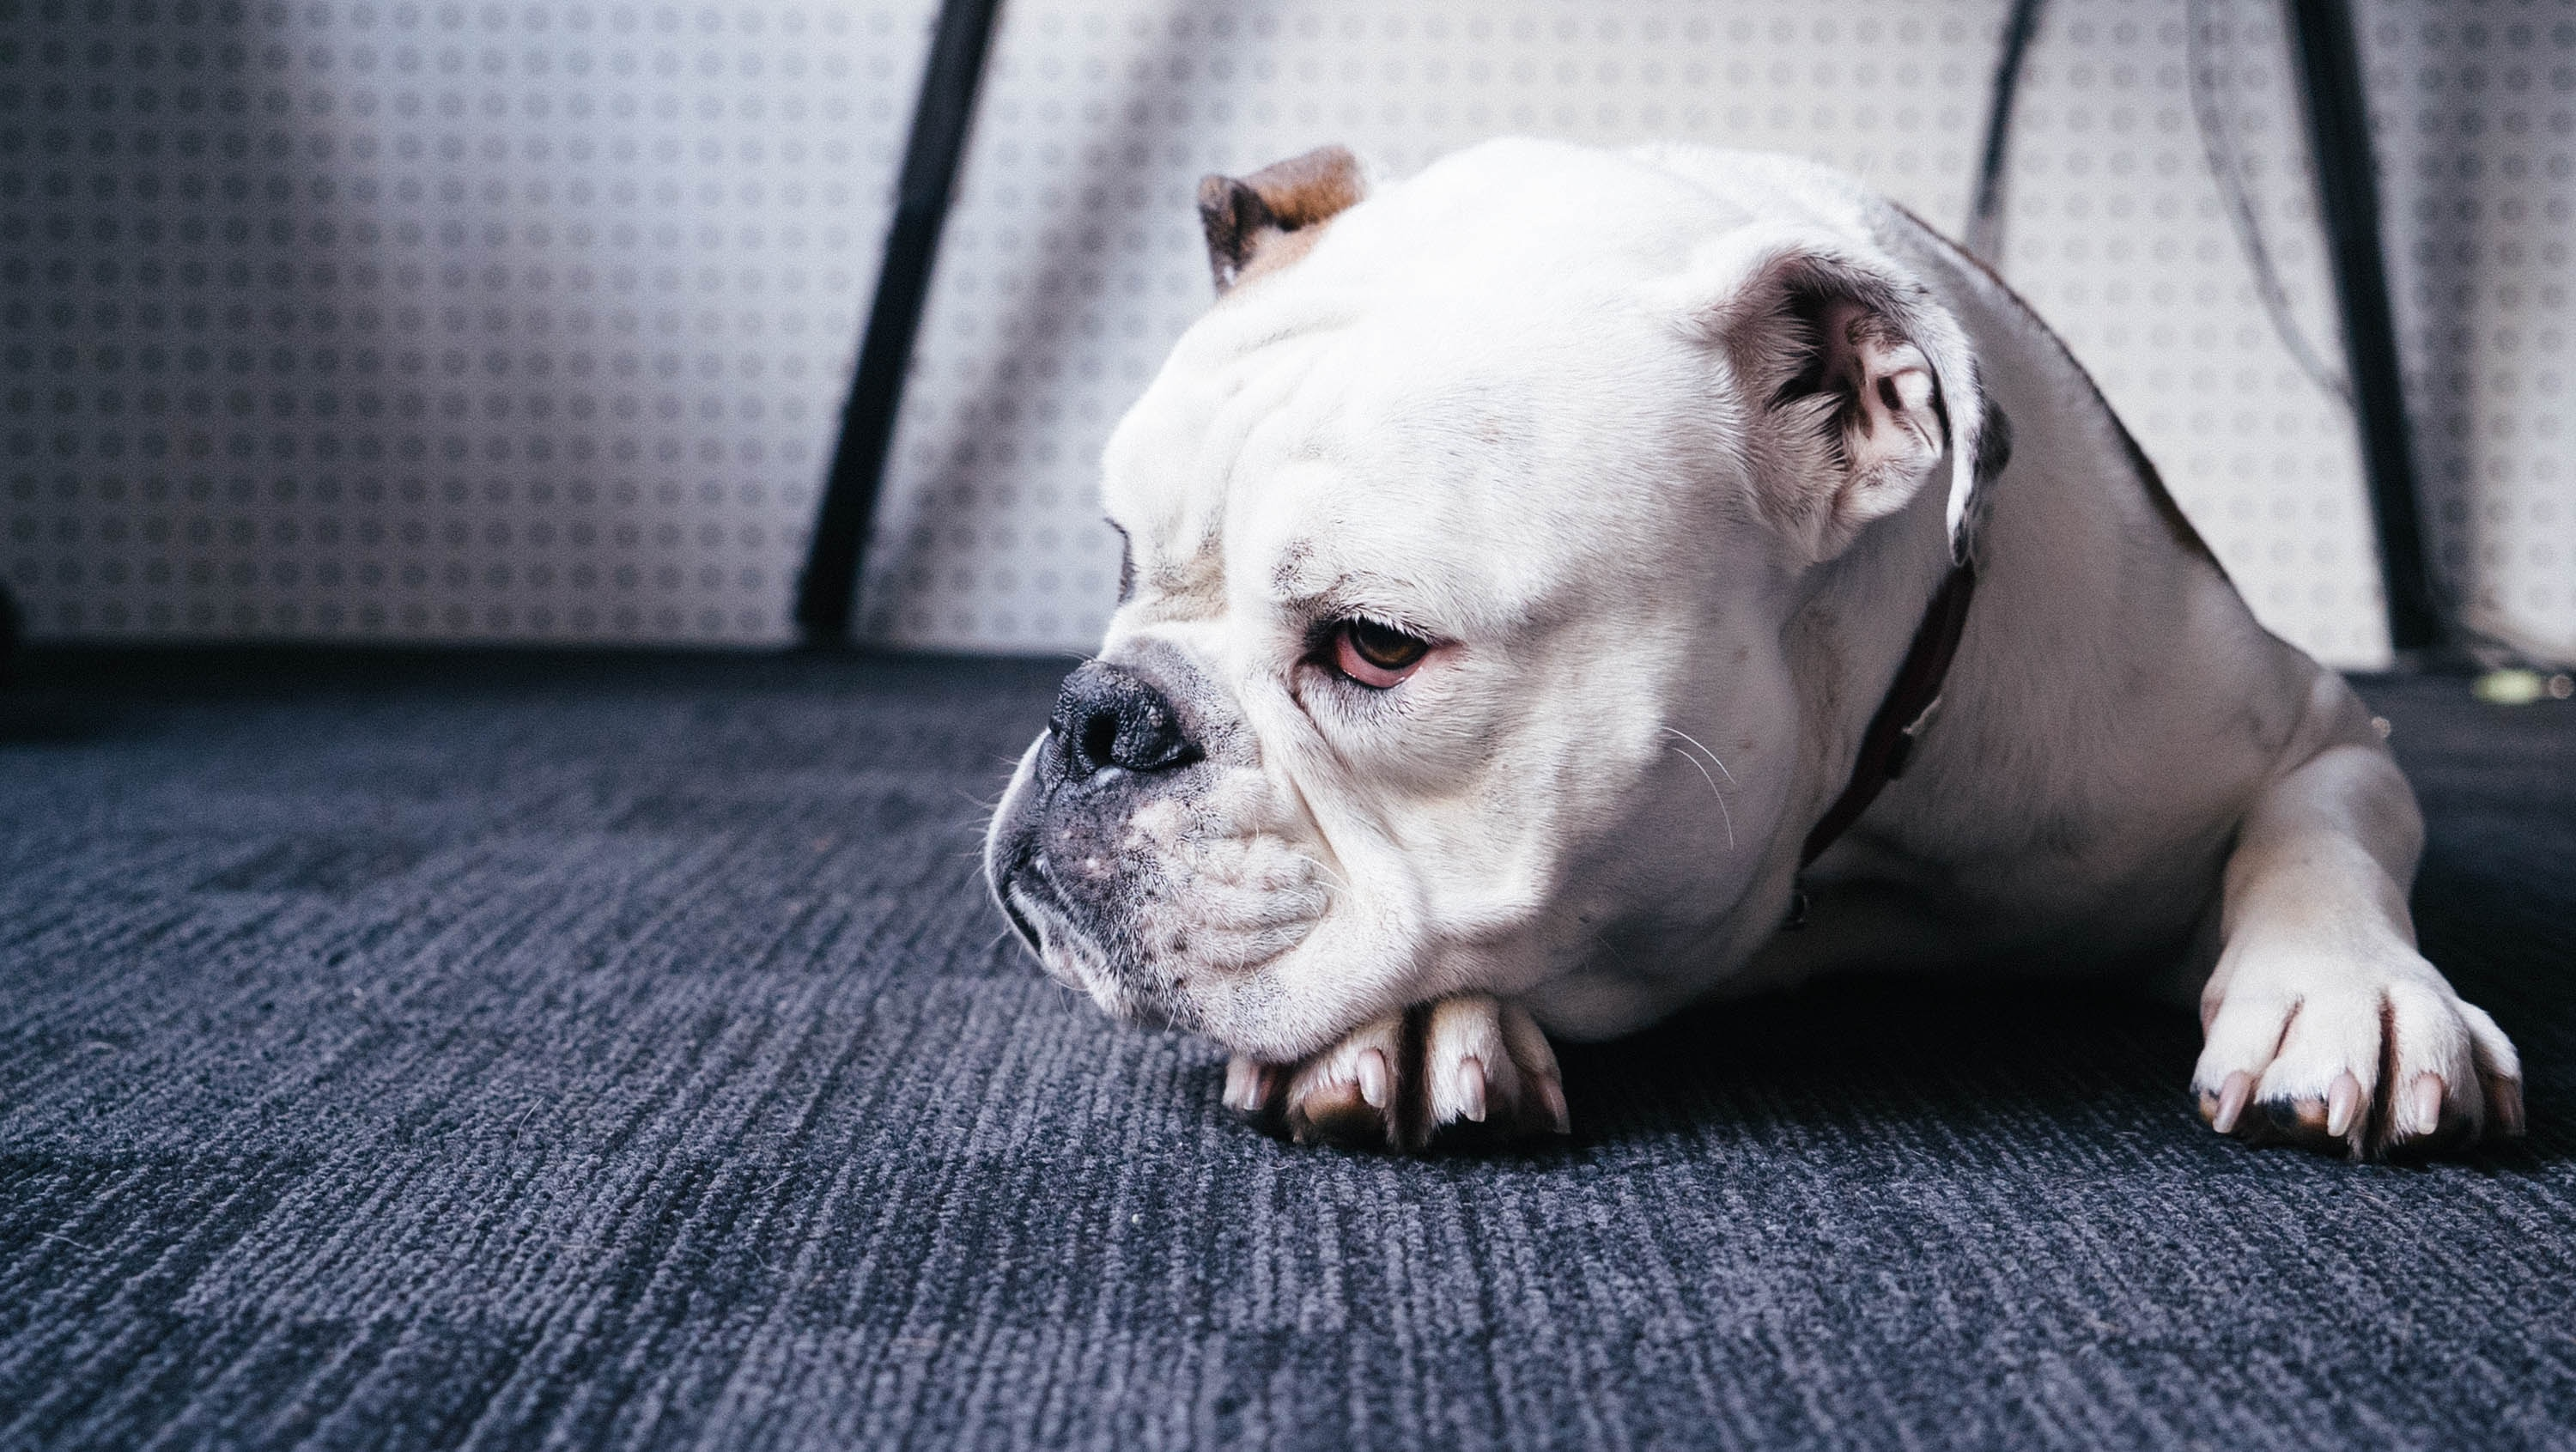 79026 download wallpaper Animals, Bulldog, Dog, Pet screensavers and pictures for free